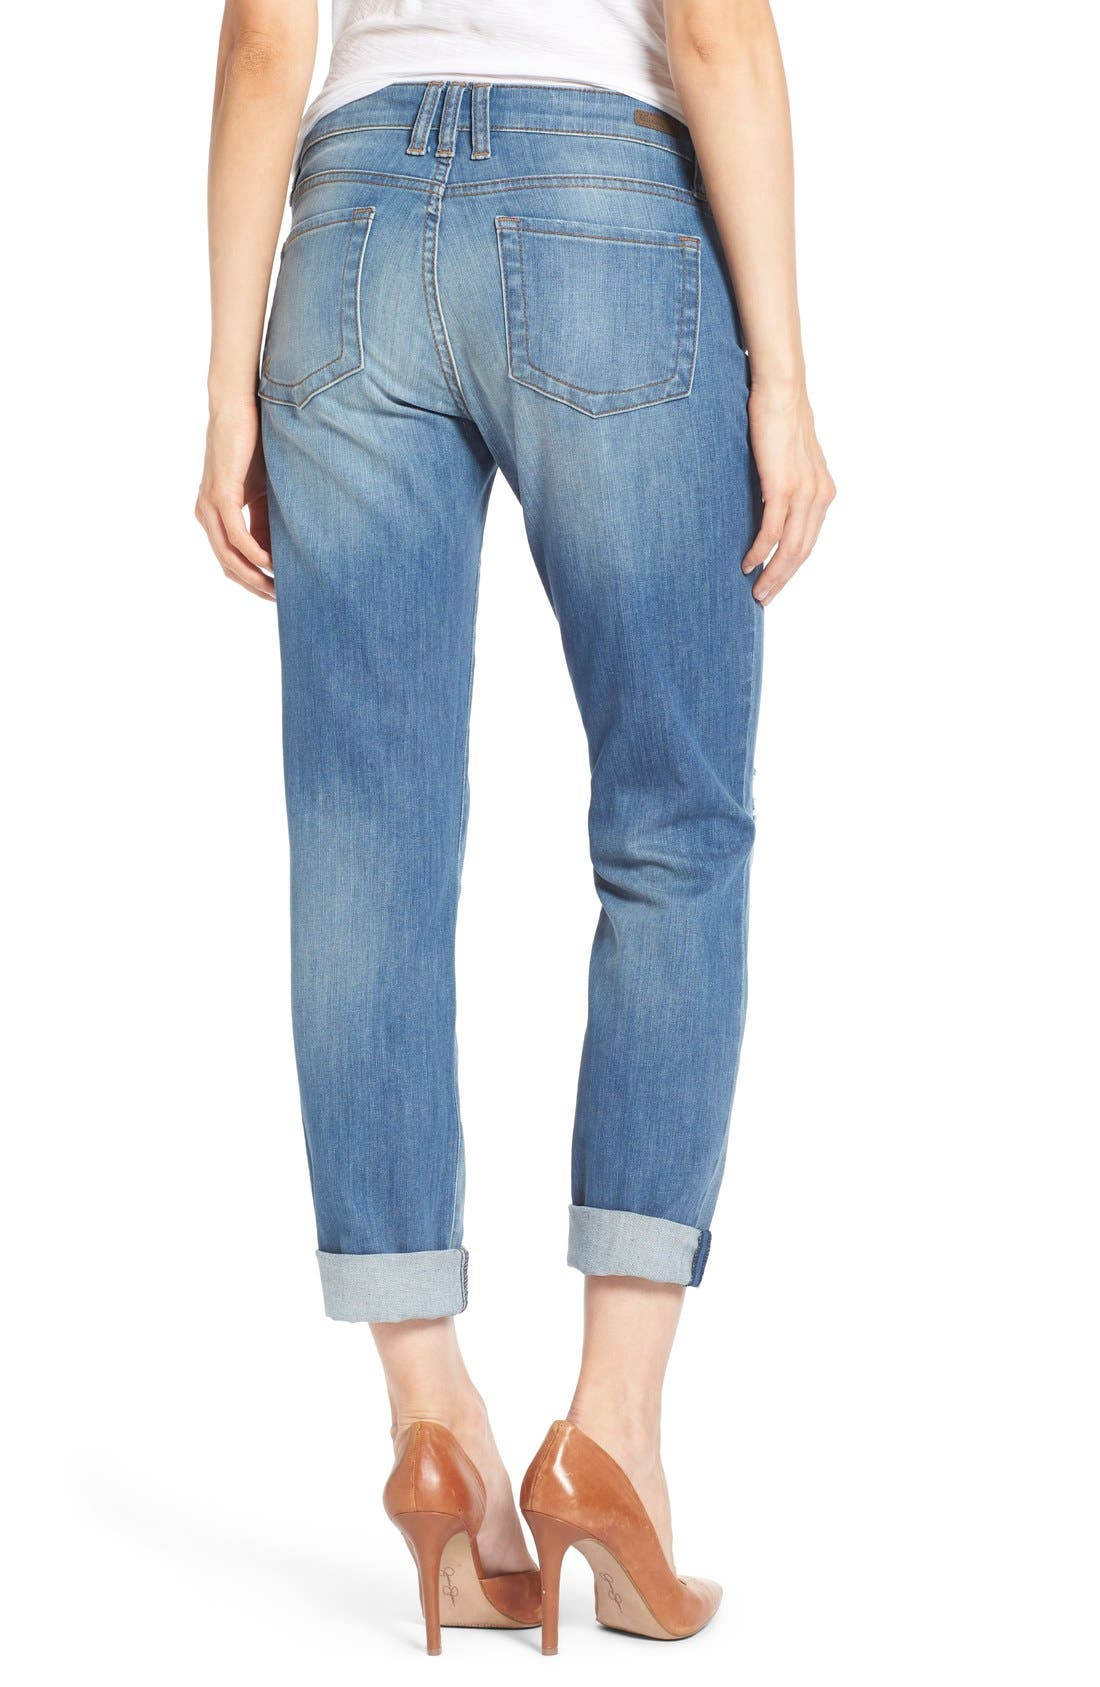 Alternate Image 2  - KUT from the Kloth 'Catherine' Distressed Stretch Boyfriend Jeans (Smile)